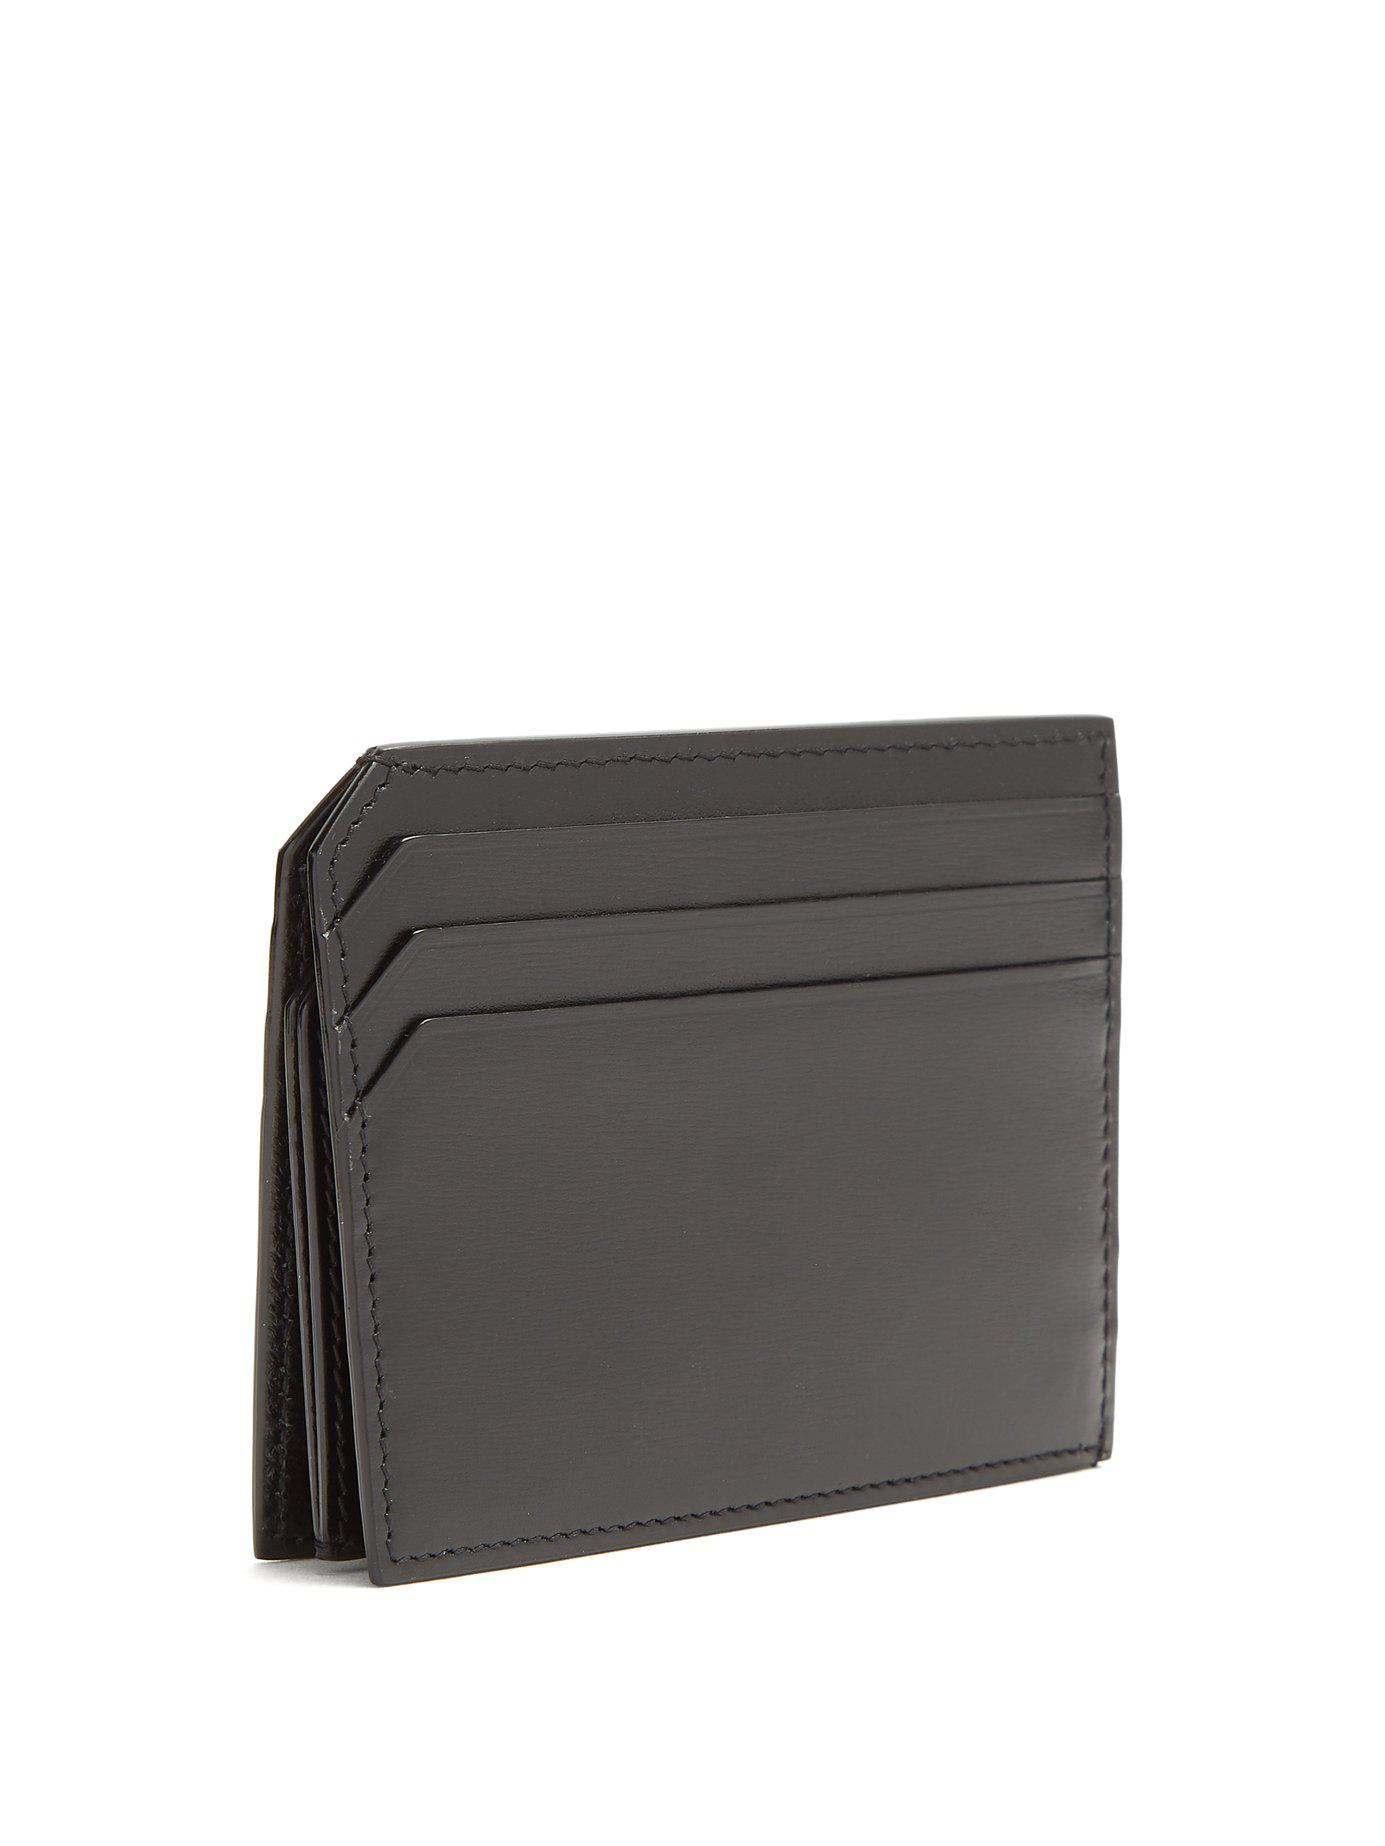 4c0af96d20 Lyst - Saint Laurent Fragments Leather Cardholder in Black for Men